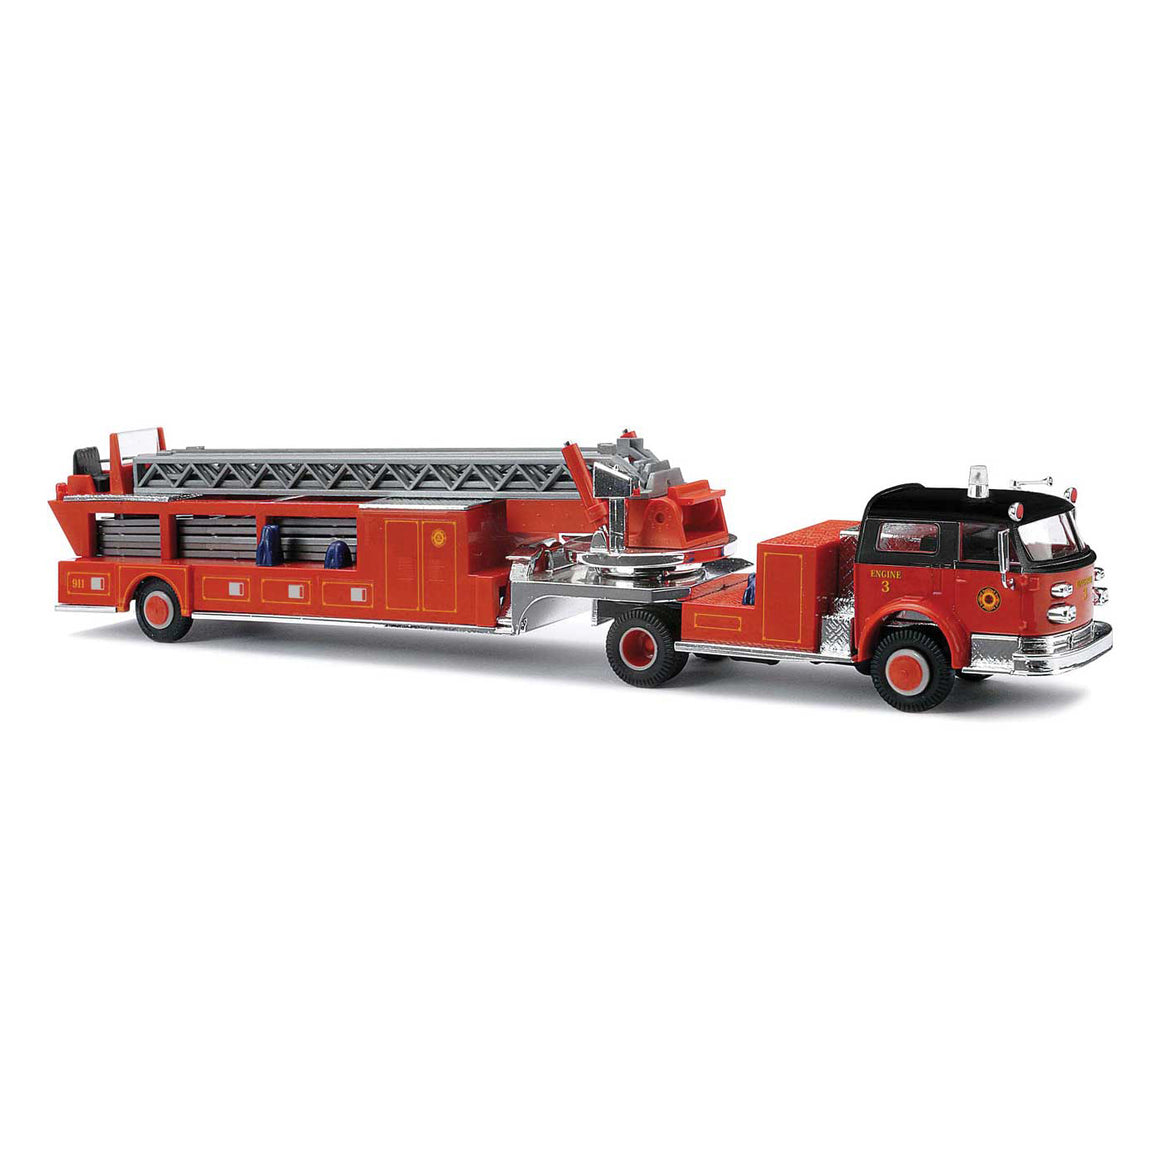 HO Scale: 1968 American-LaFrance Fire Hook and Ladder Truck